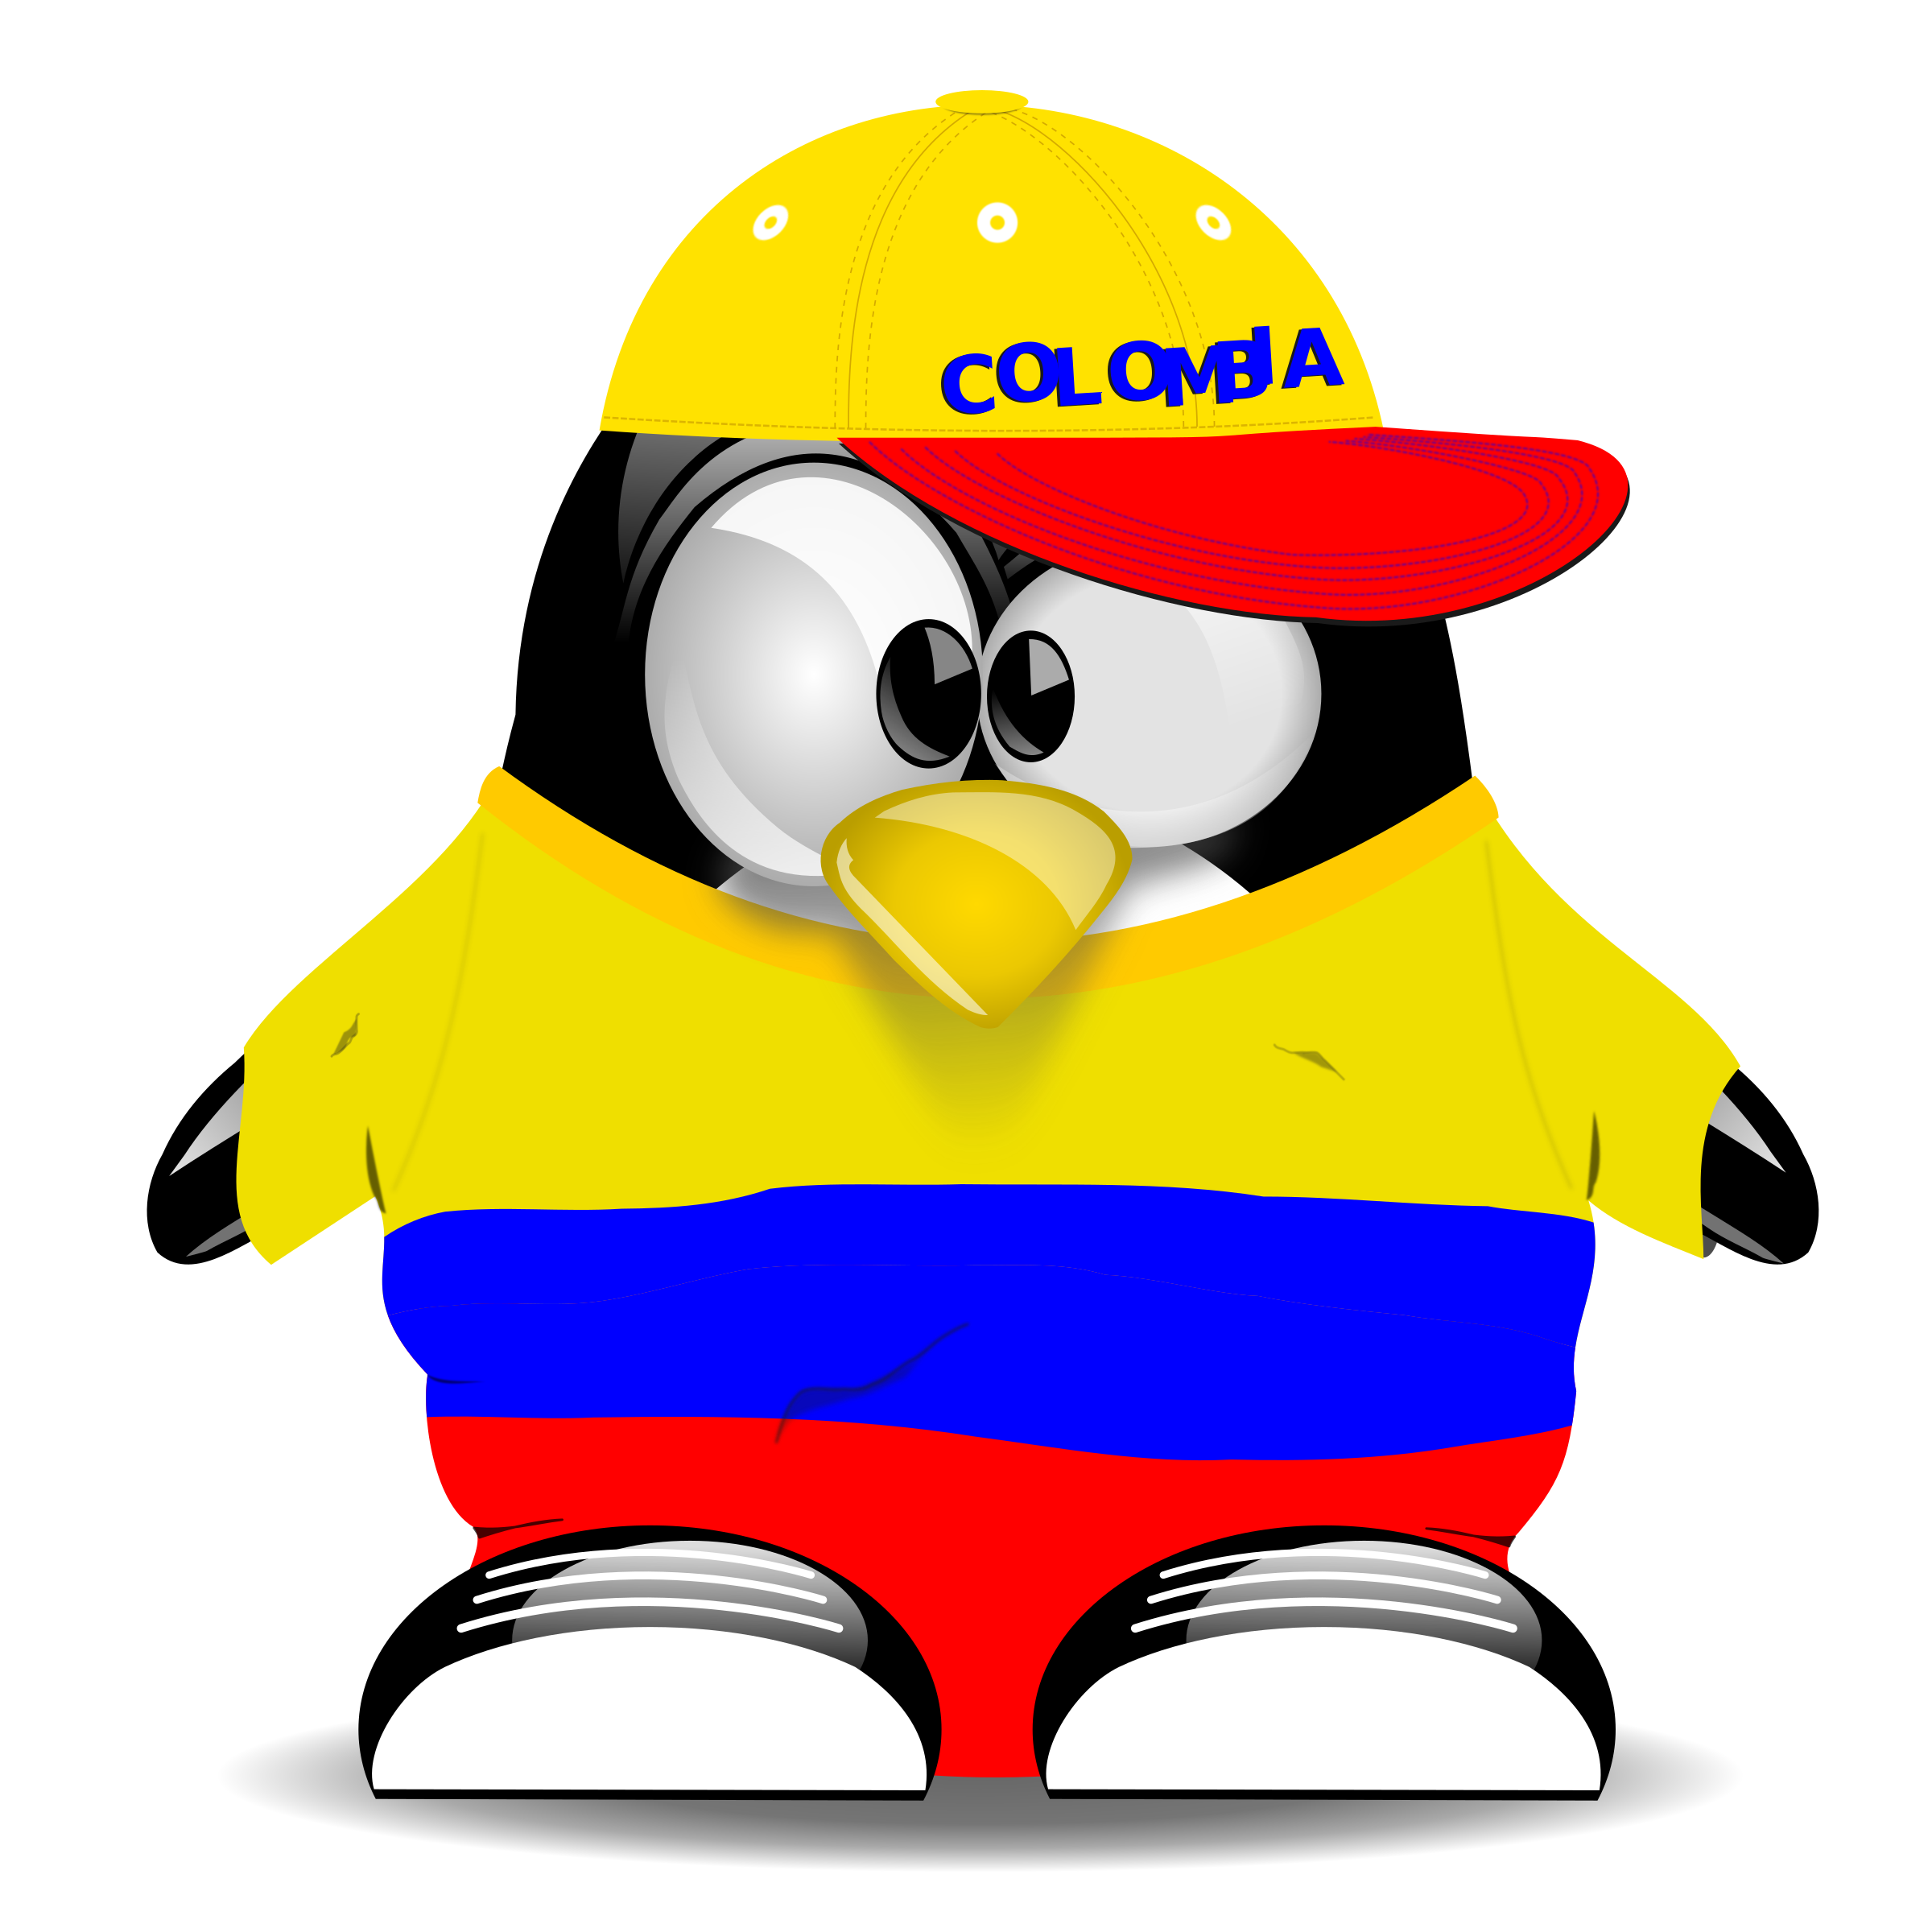 ColombianUX by yamid